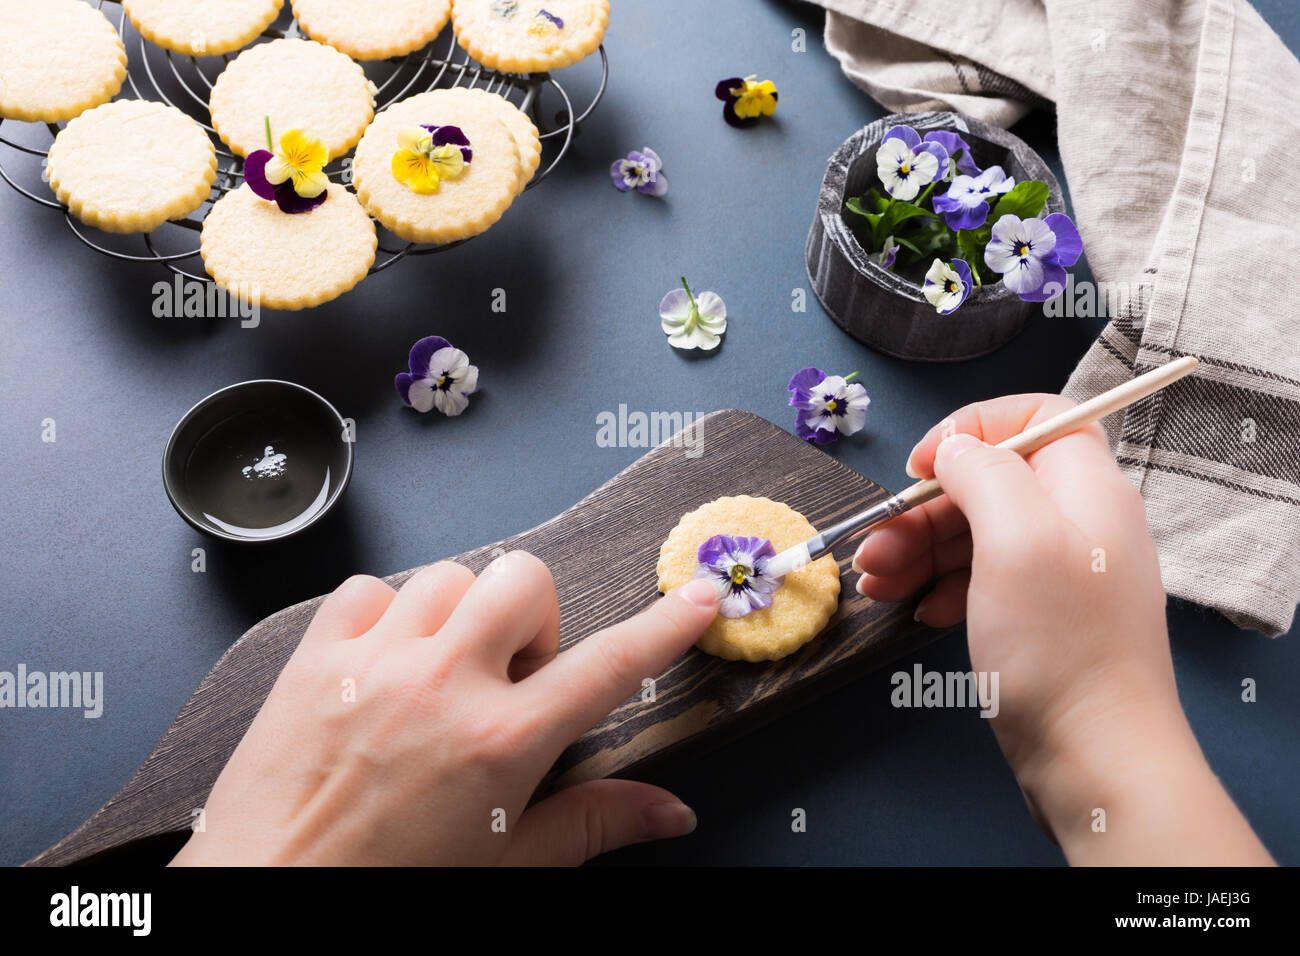 Process of making shortbread cookies with edible flowers on old wooden background. Holiday food - Stock Image